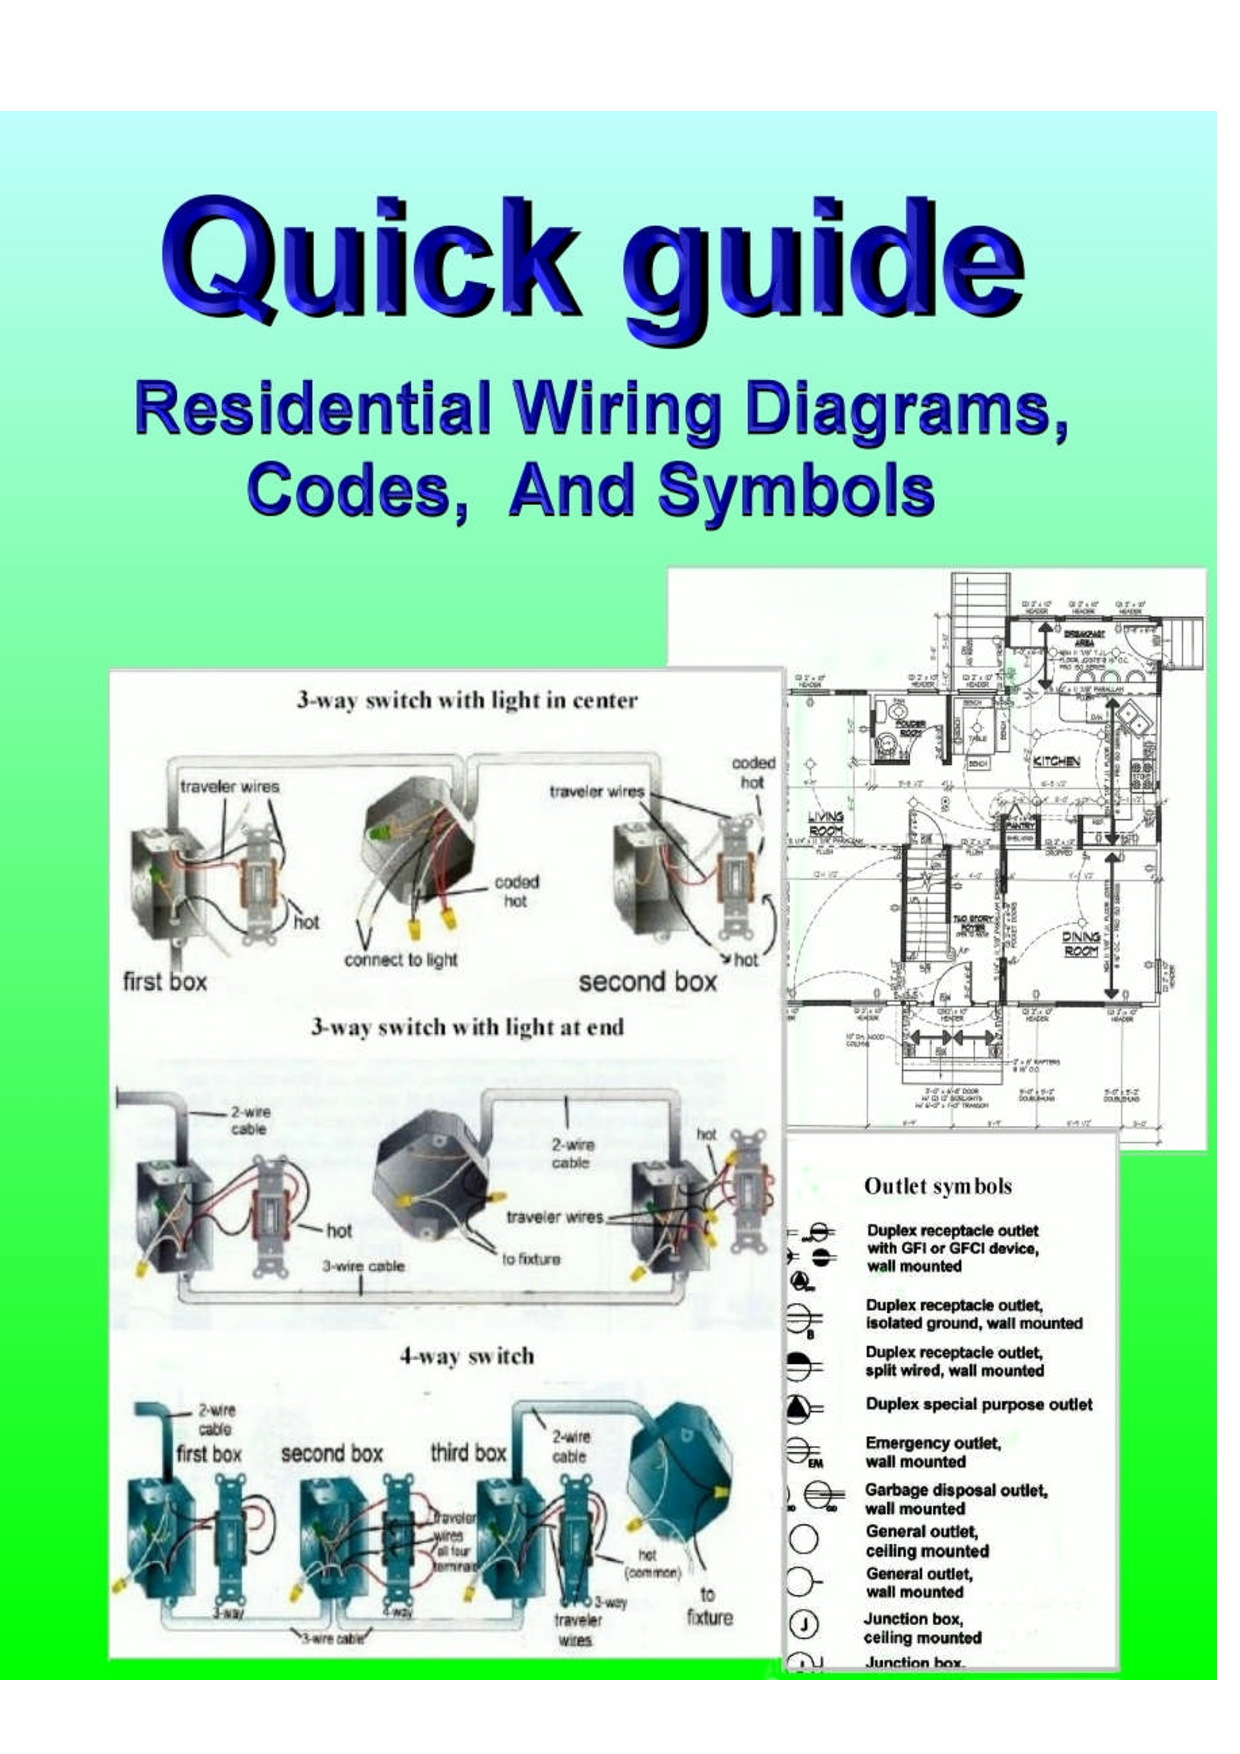 Electrical wiring si systems electrical wiring and diagram cheapraybanclubmaster Gallery